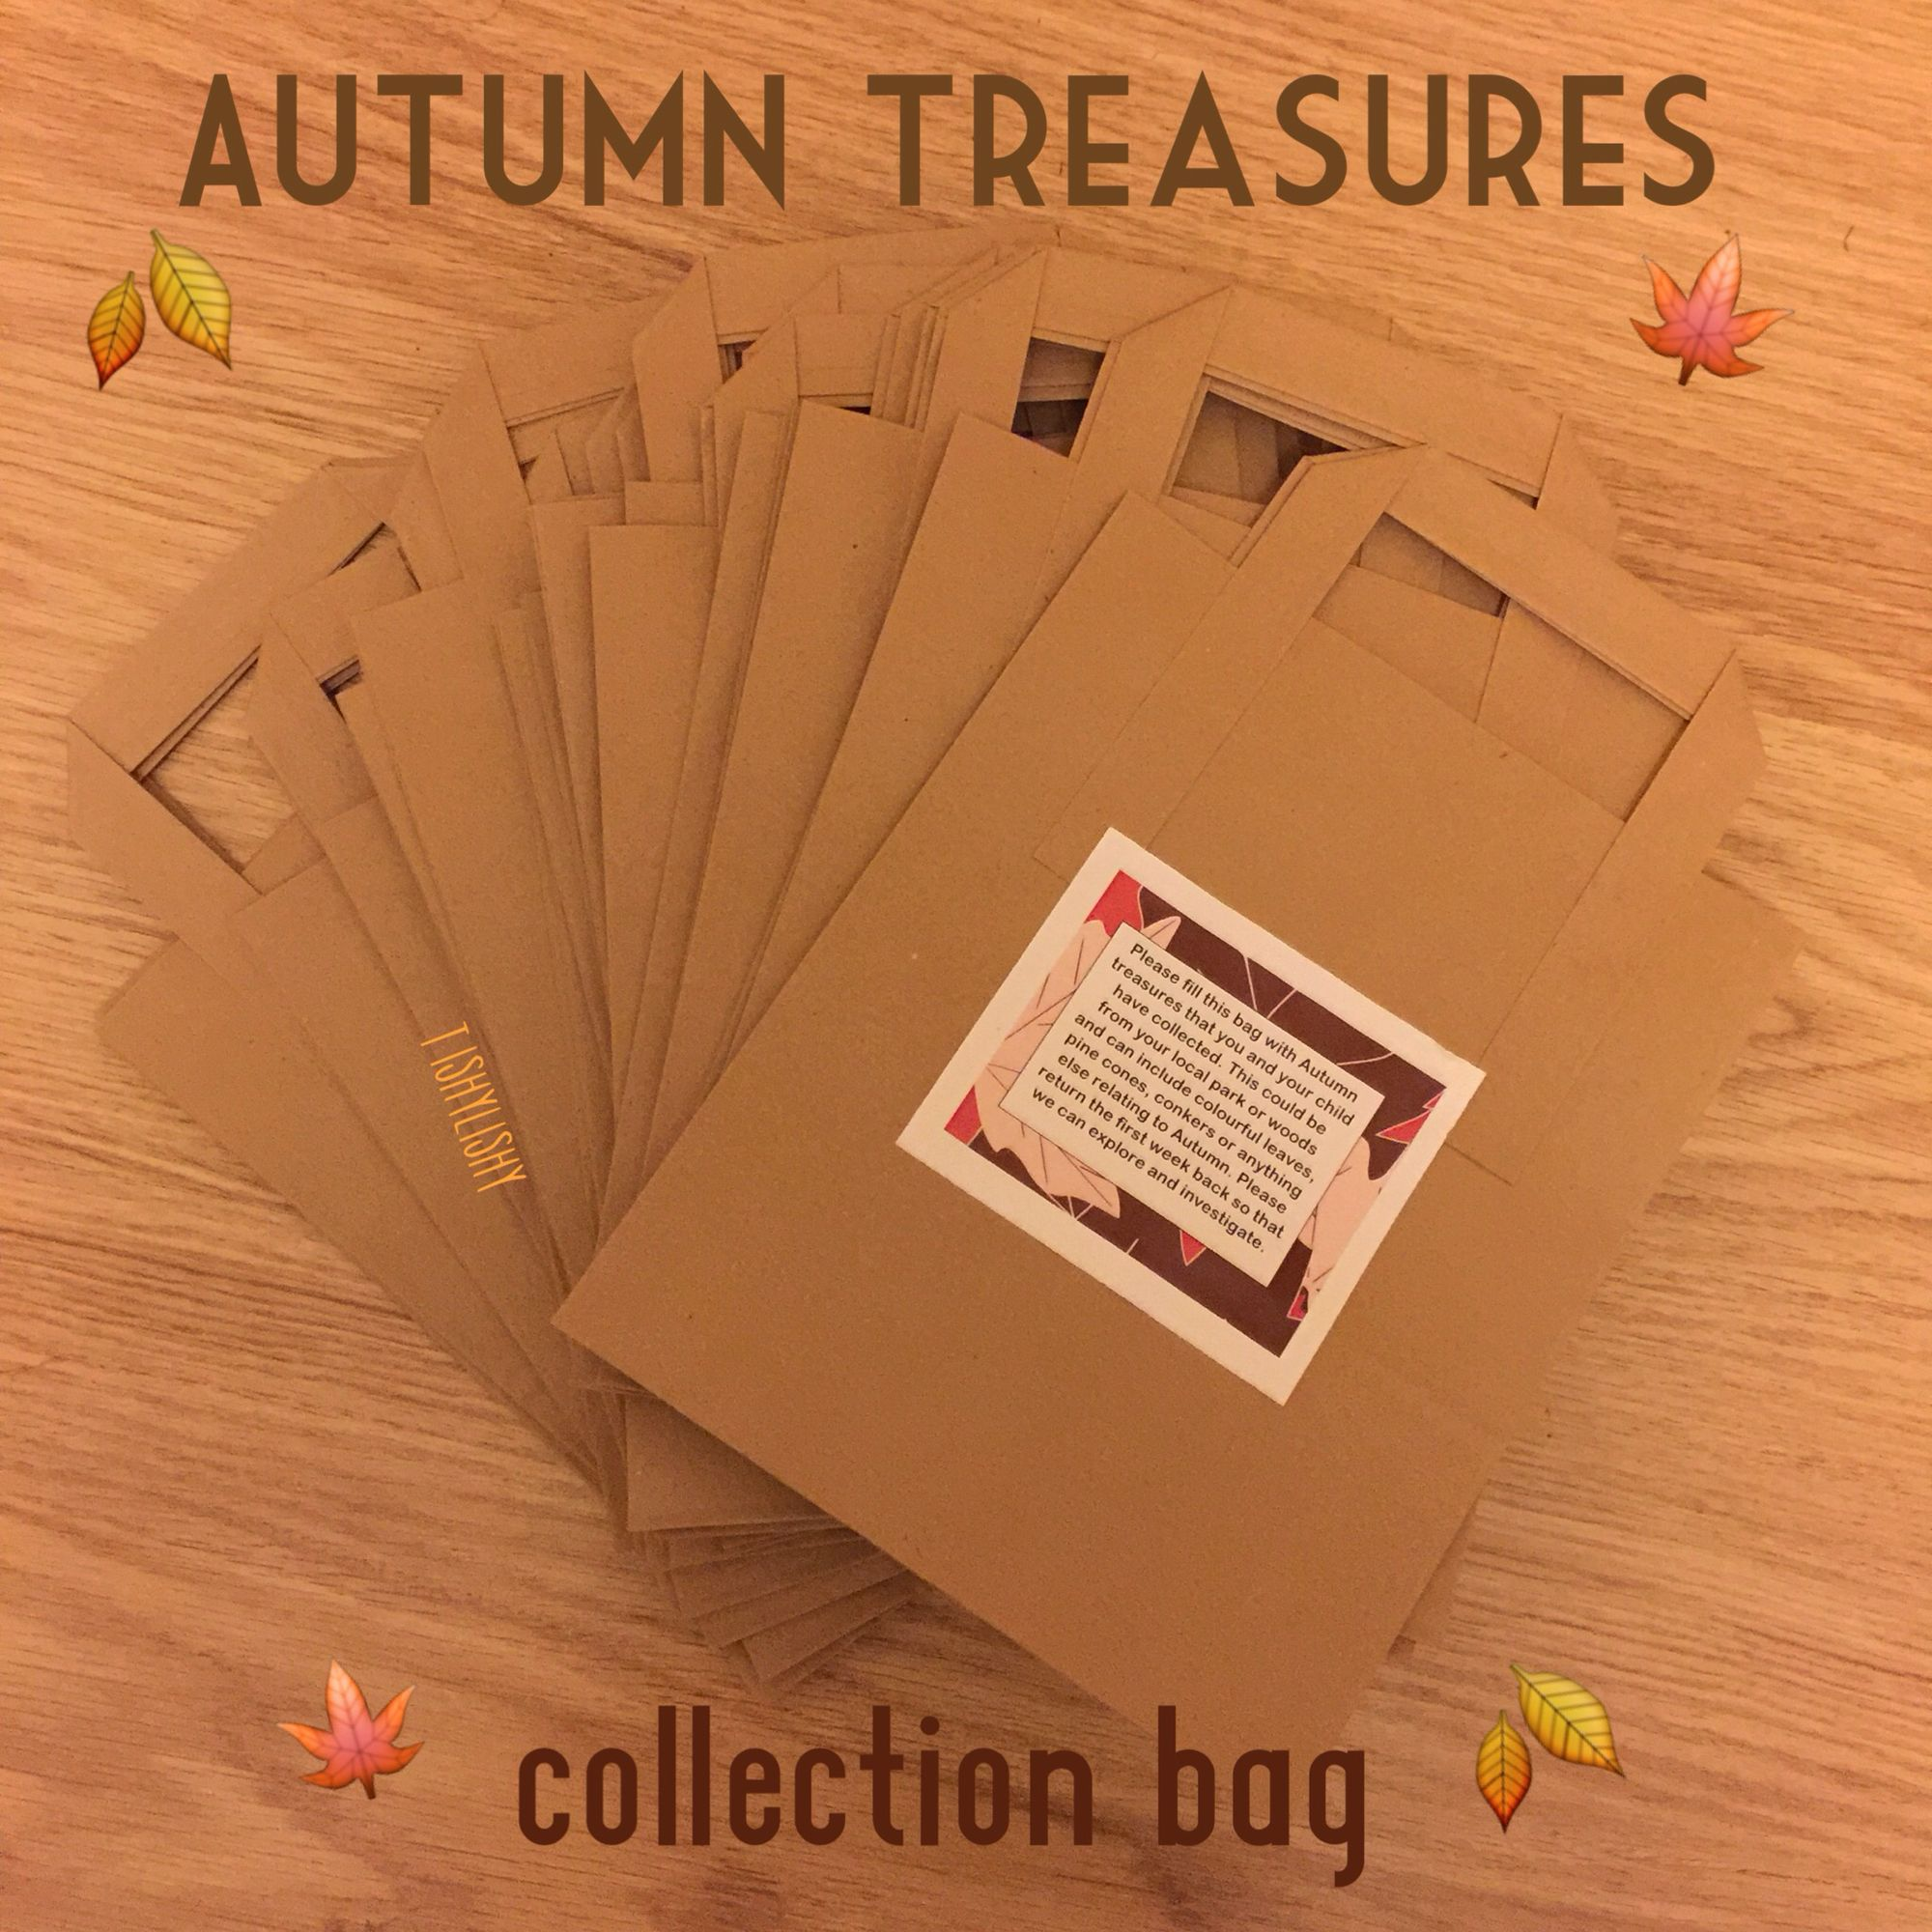 Family homework... Autumn collection bag. Children asked ...